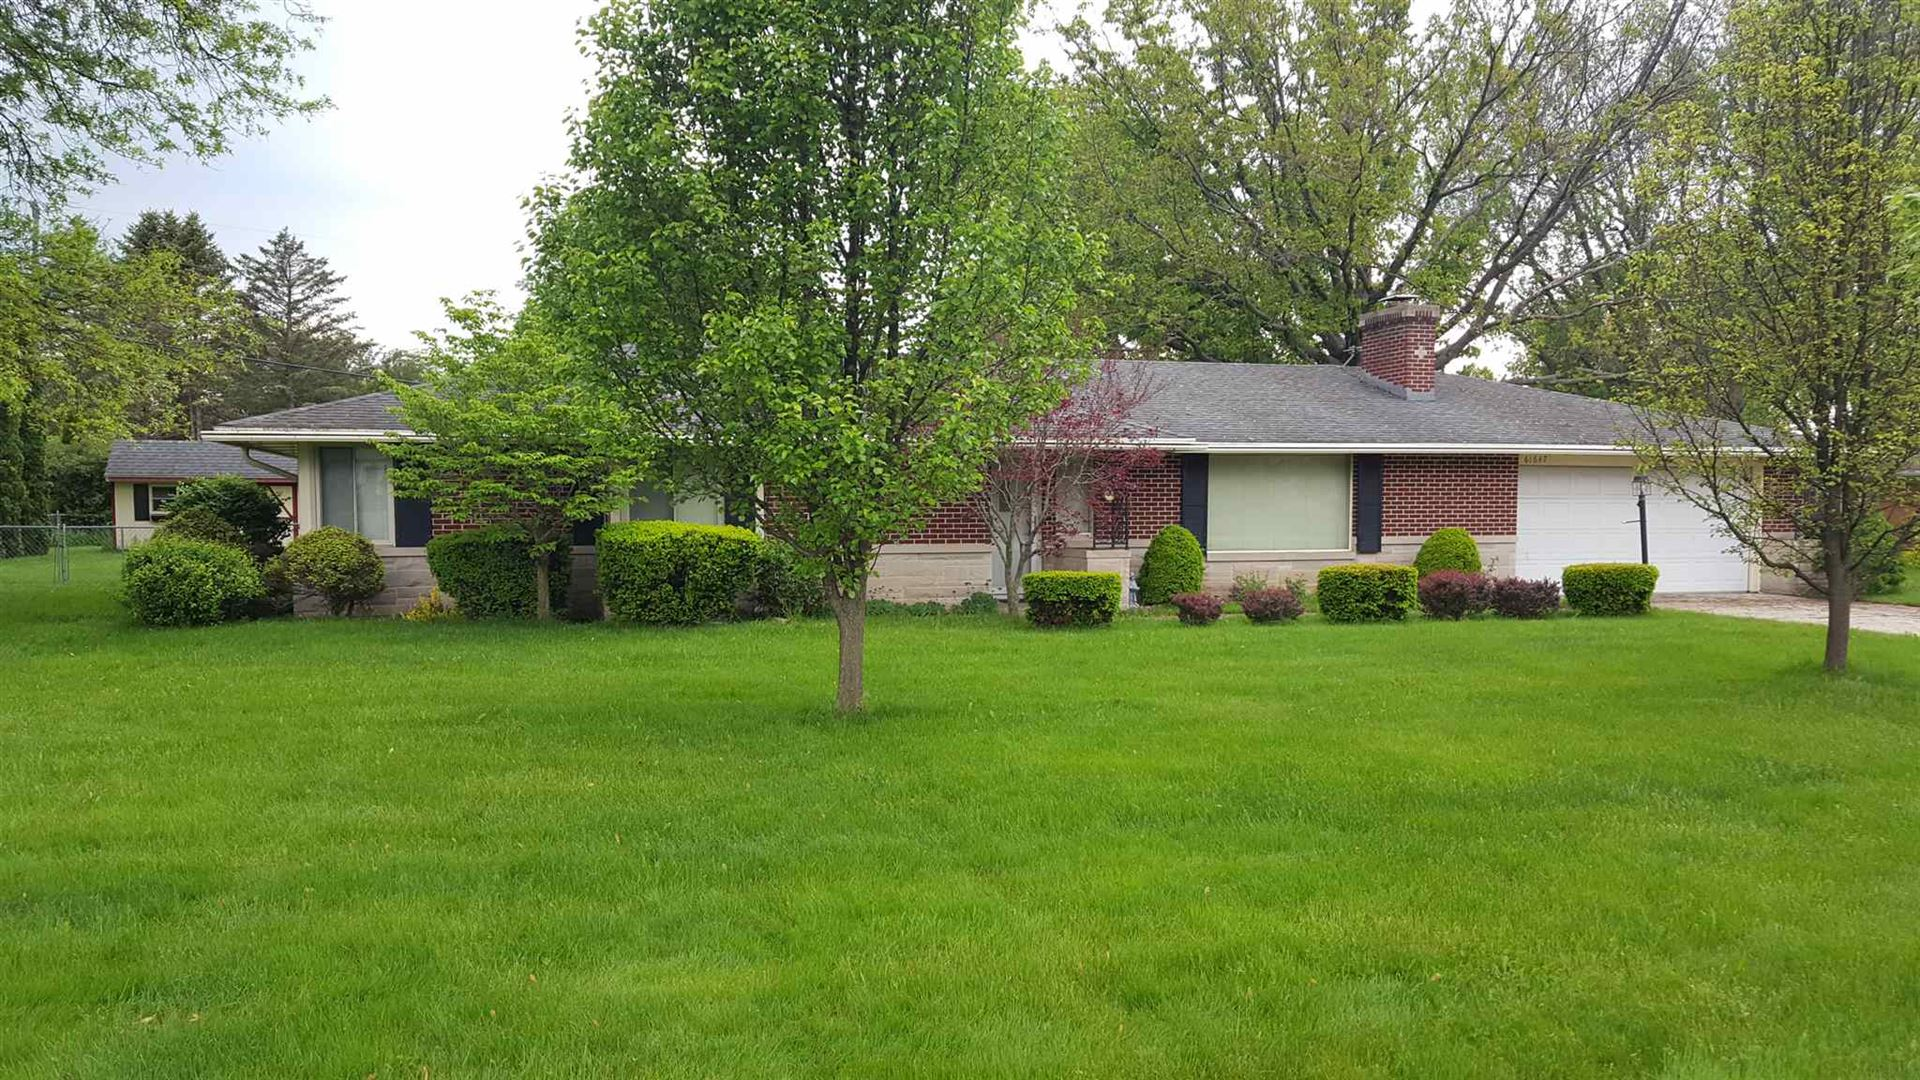 61647 Miami Road, South Bend, IN 46614 - #: 202026394